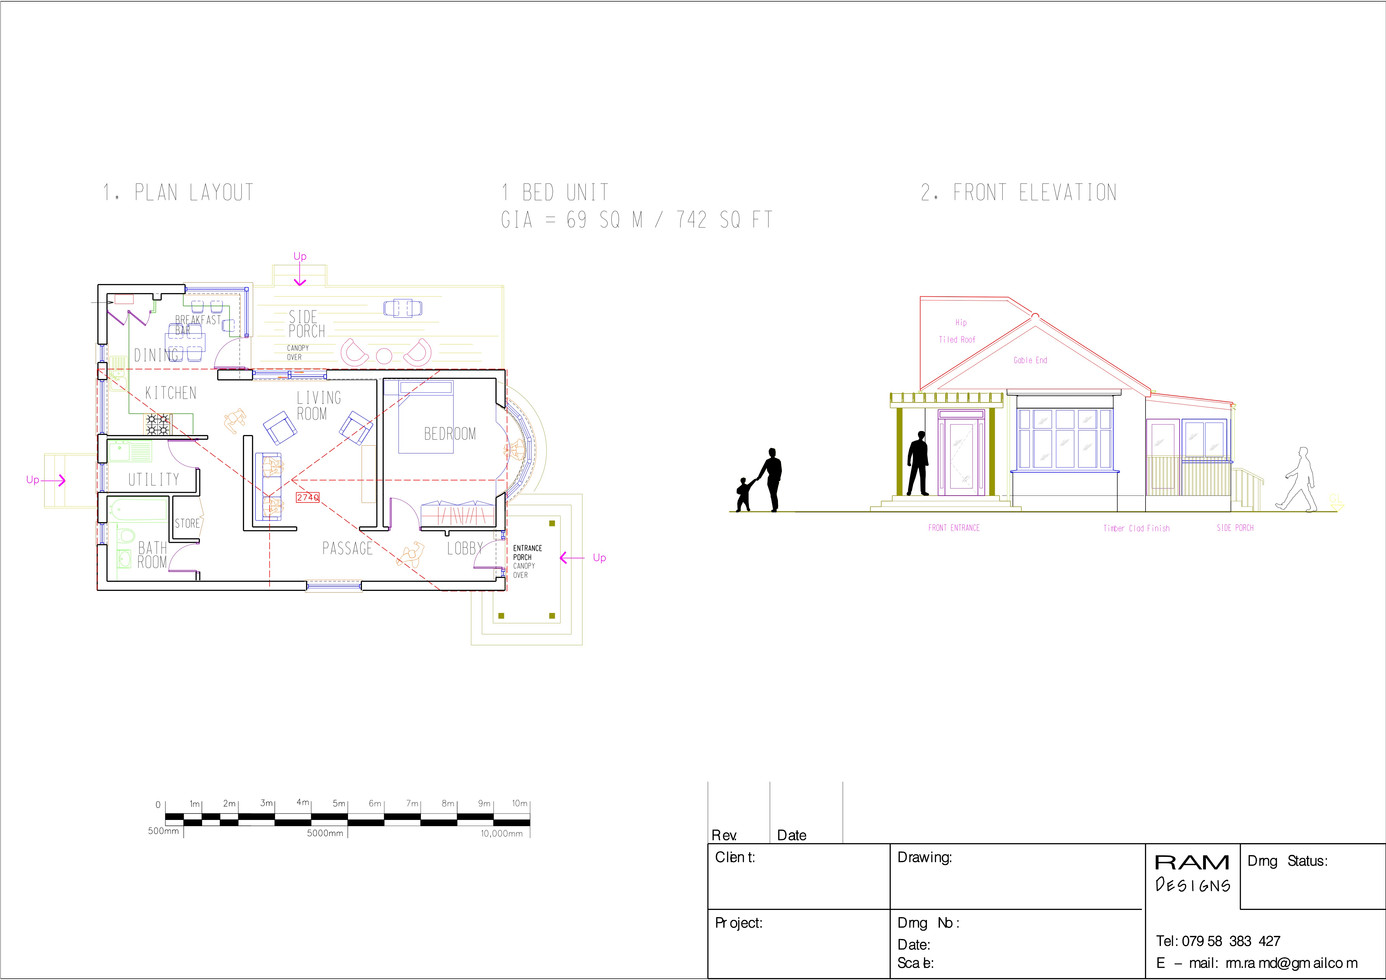 RESIDENTIAL UNIT 1 BED - 2D DRAWING